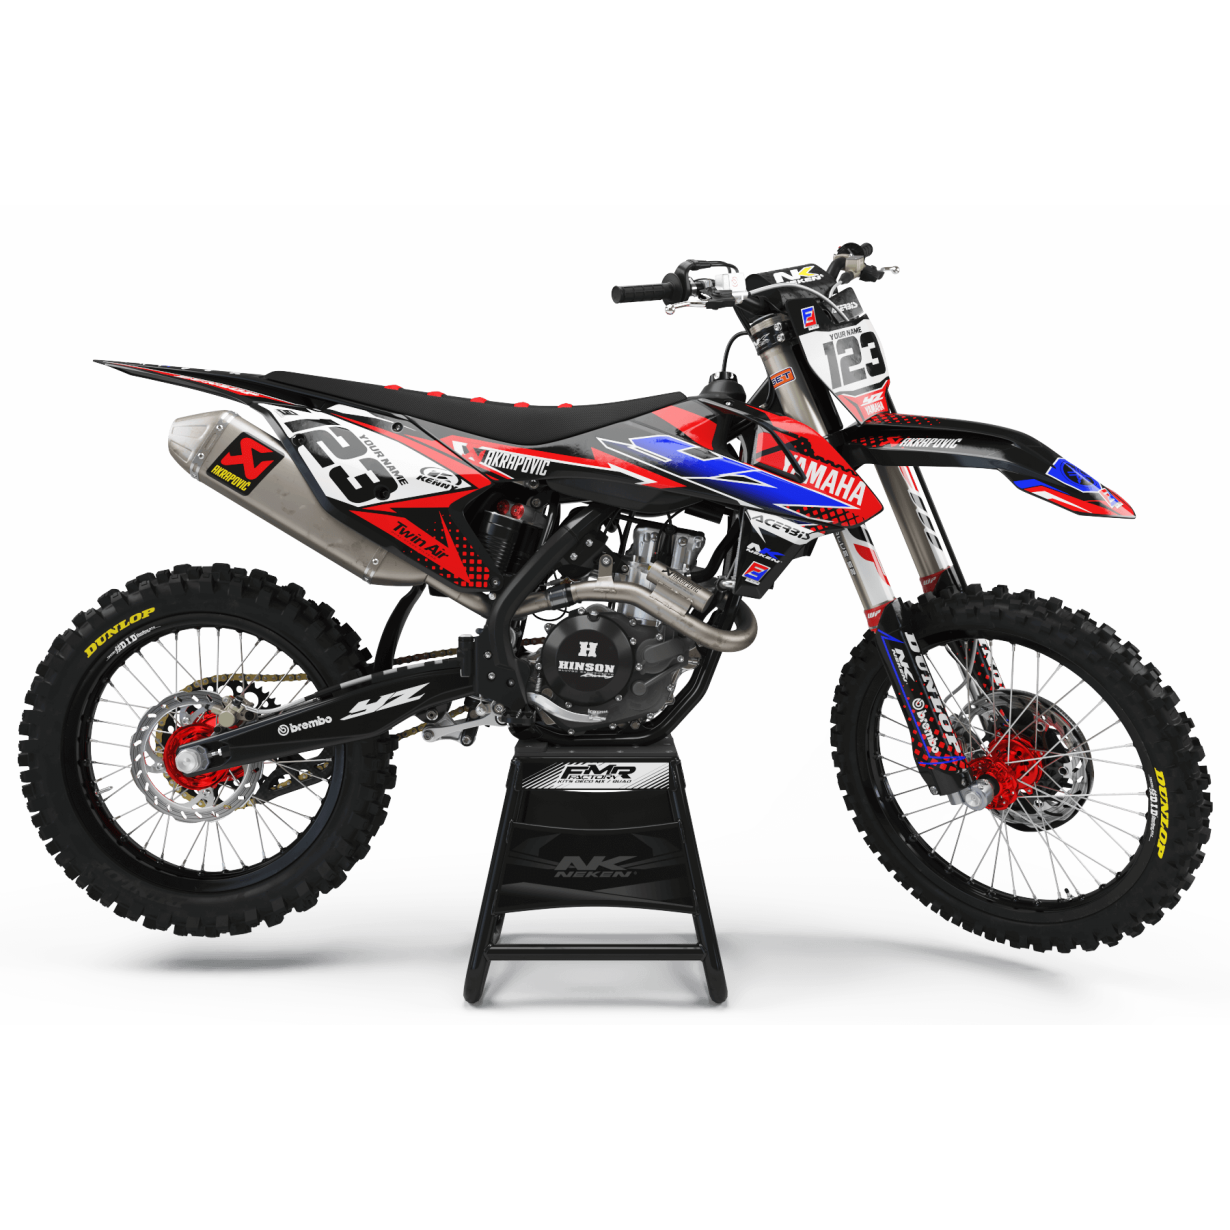 Kit déco Perso FACTORY yamaha ENERGY MA33E2 rouge/bleu